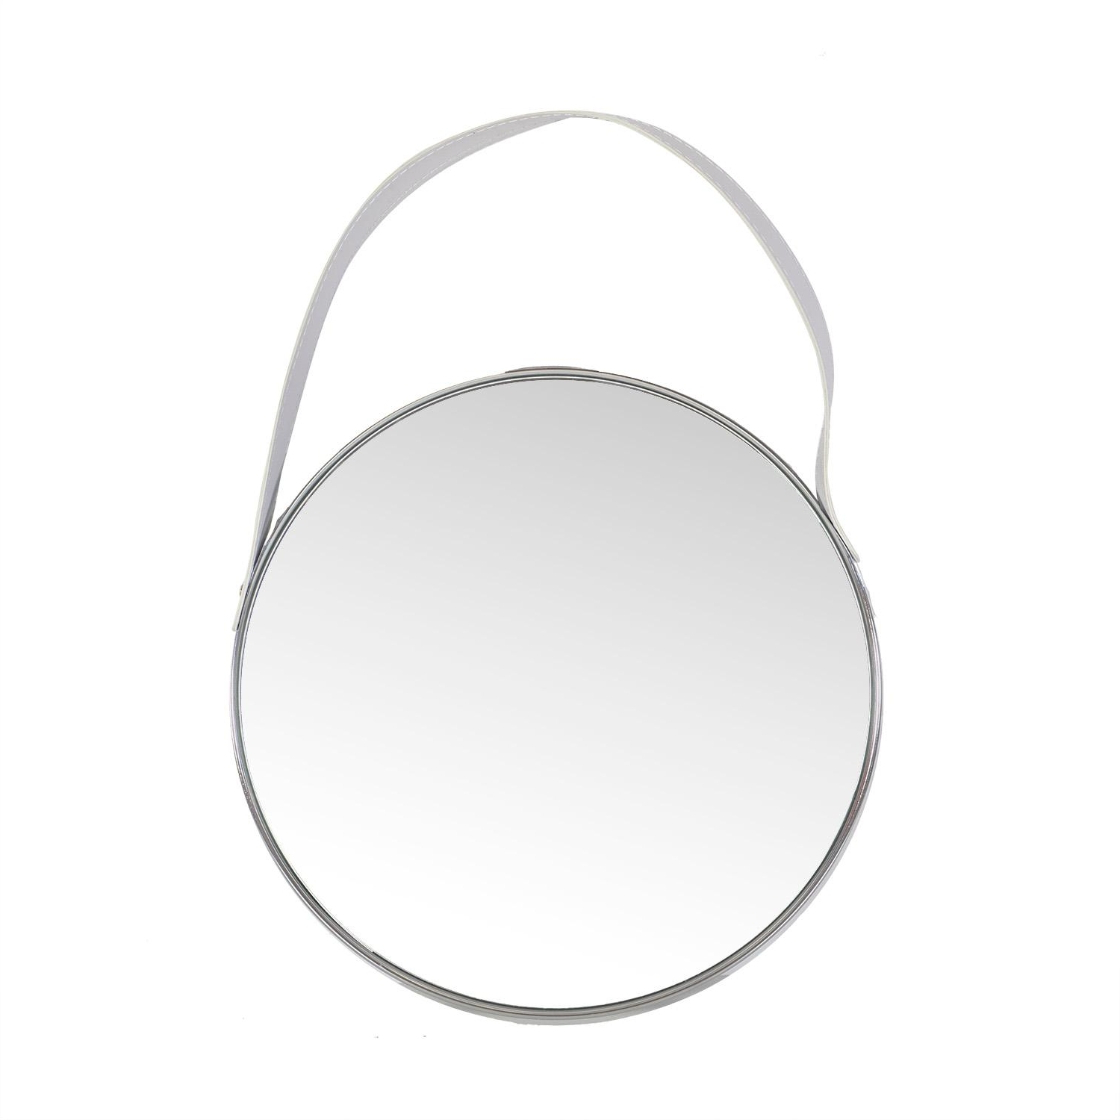 Safety Wall Mirrors Intended For Newest Wall Mirror Crystal With Safety Film D42,5x3,5cm, Chromed Steel (View 11 of 20)